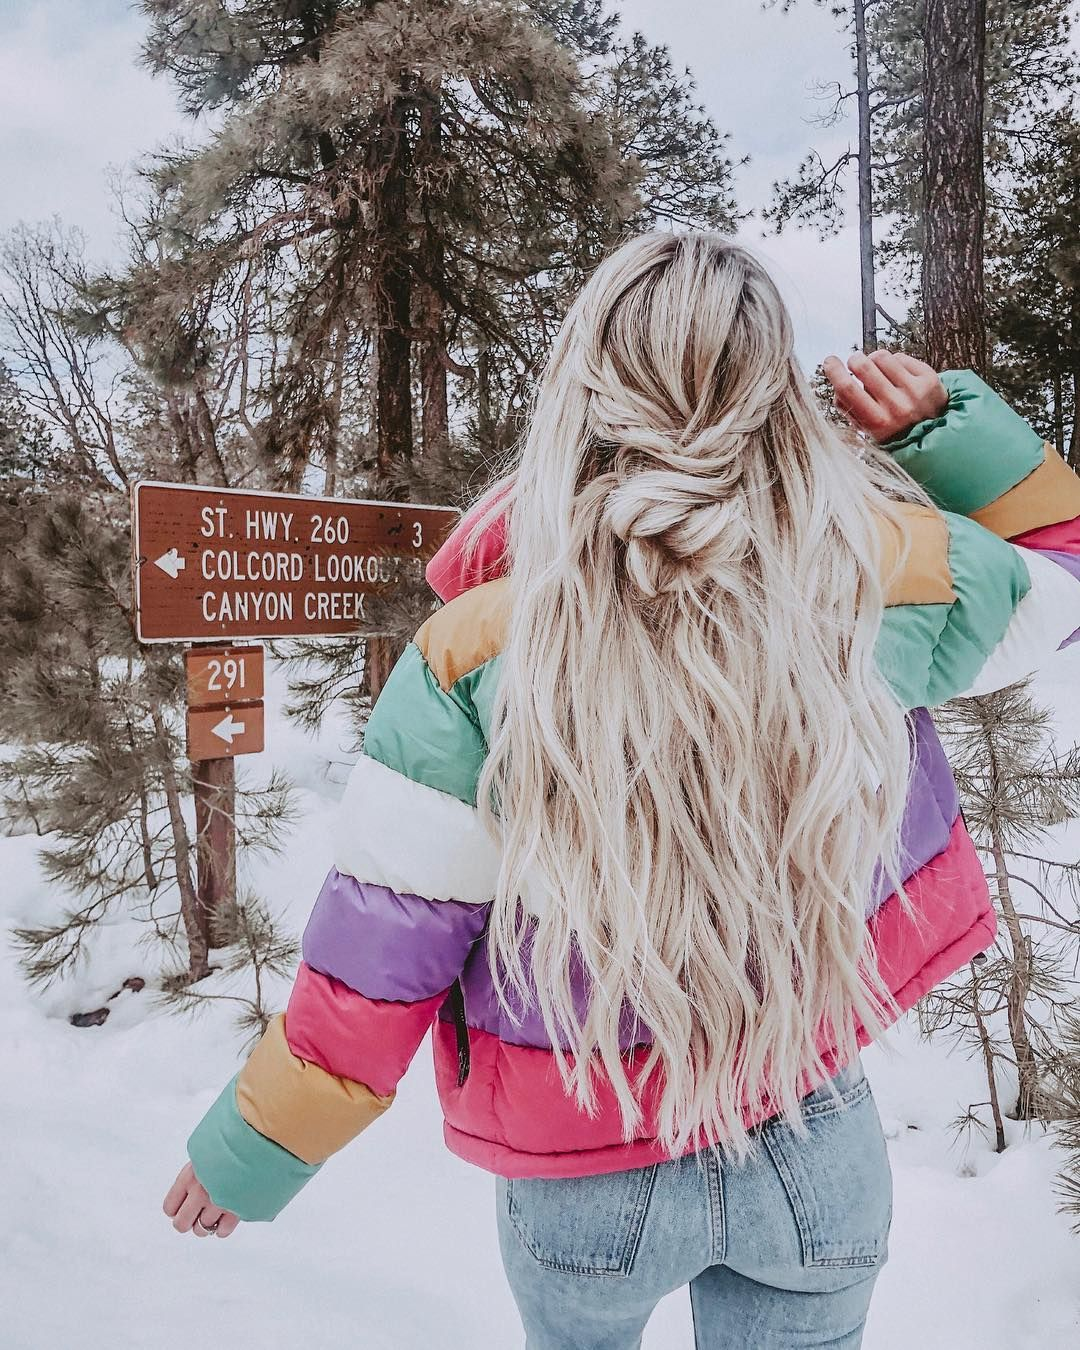 Do you wanna learn how to styling your own hair? Well, just visit our web site to seeing more amazing video tutorials! #hairtutorials #hairvideo #videotutorial #updotutorials #longhair #longhairstyle